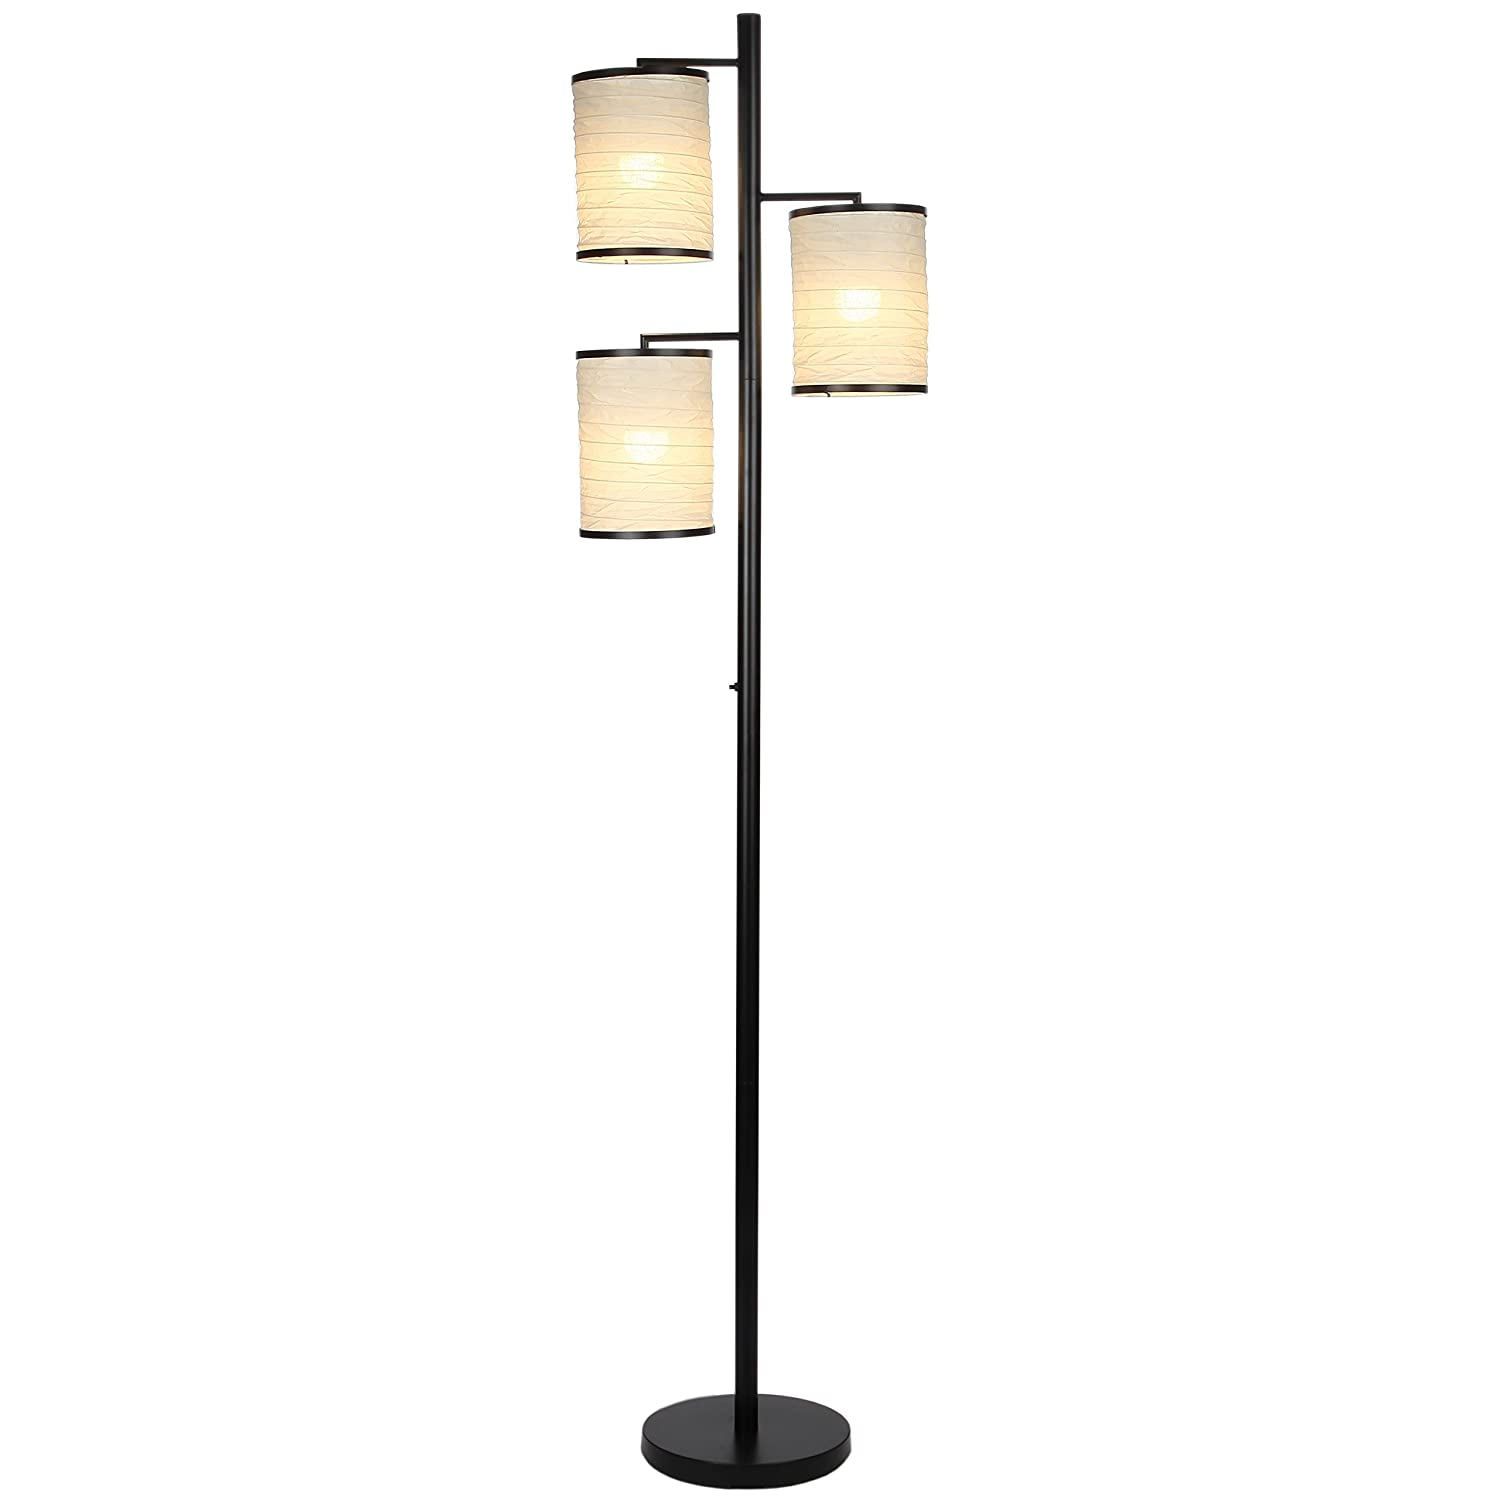 brightech liam led floor lamp  classy and stylish  light led tree lamp decorative interior design standing lamp  includes brightech lightprowatt . brightech liam led floor lamp  classy and stylish  light led